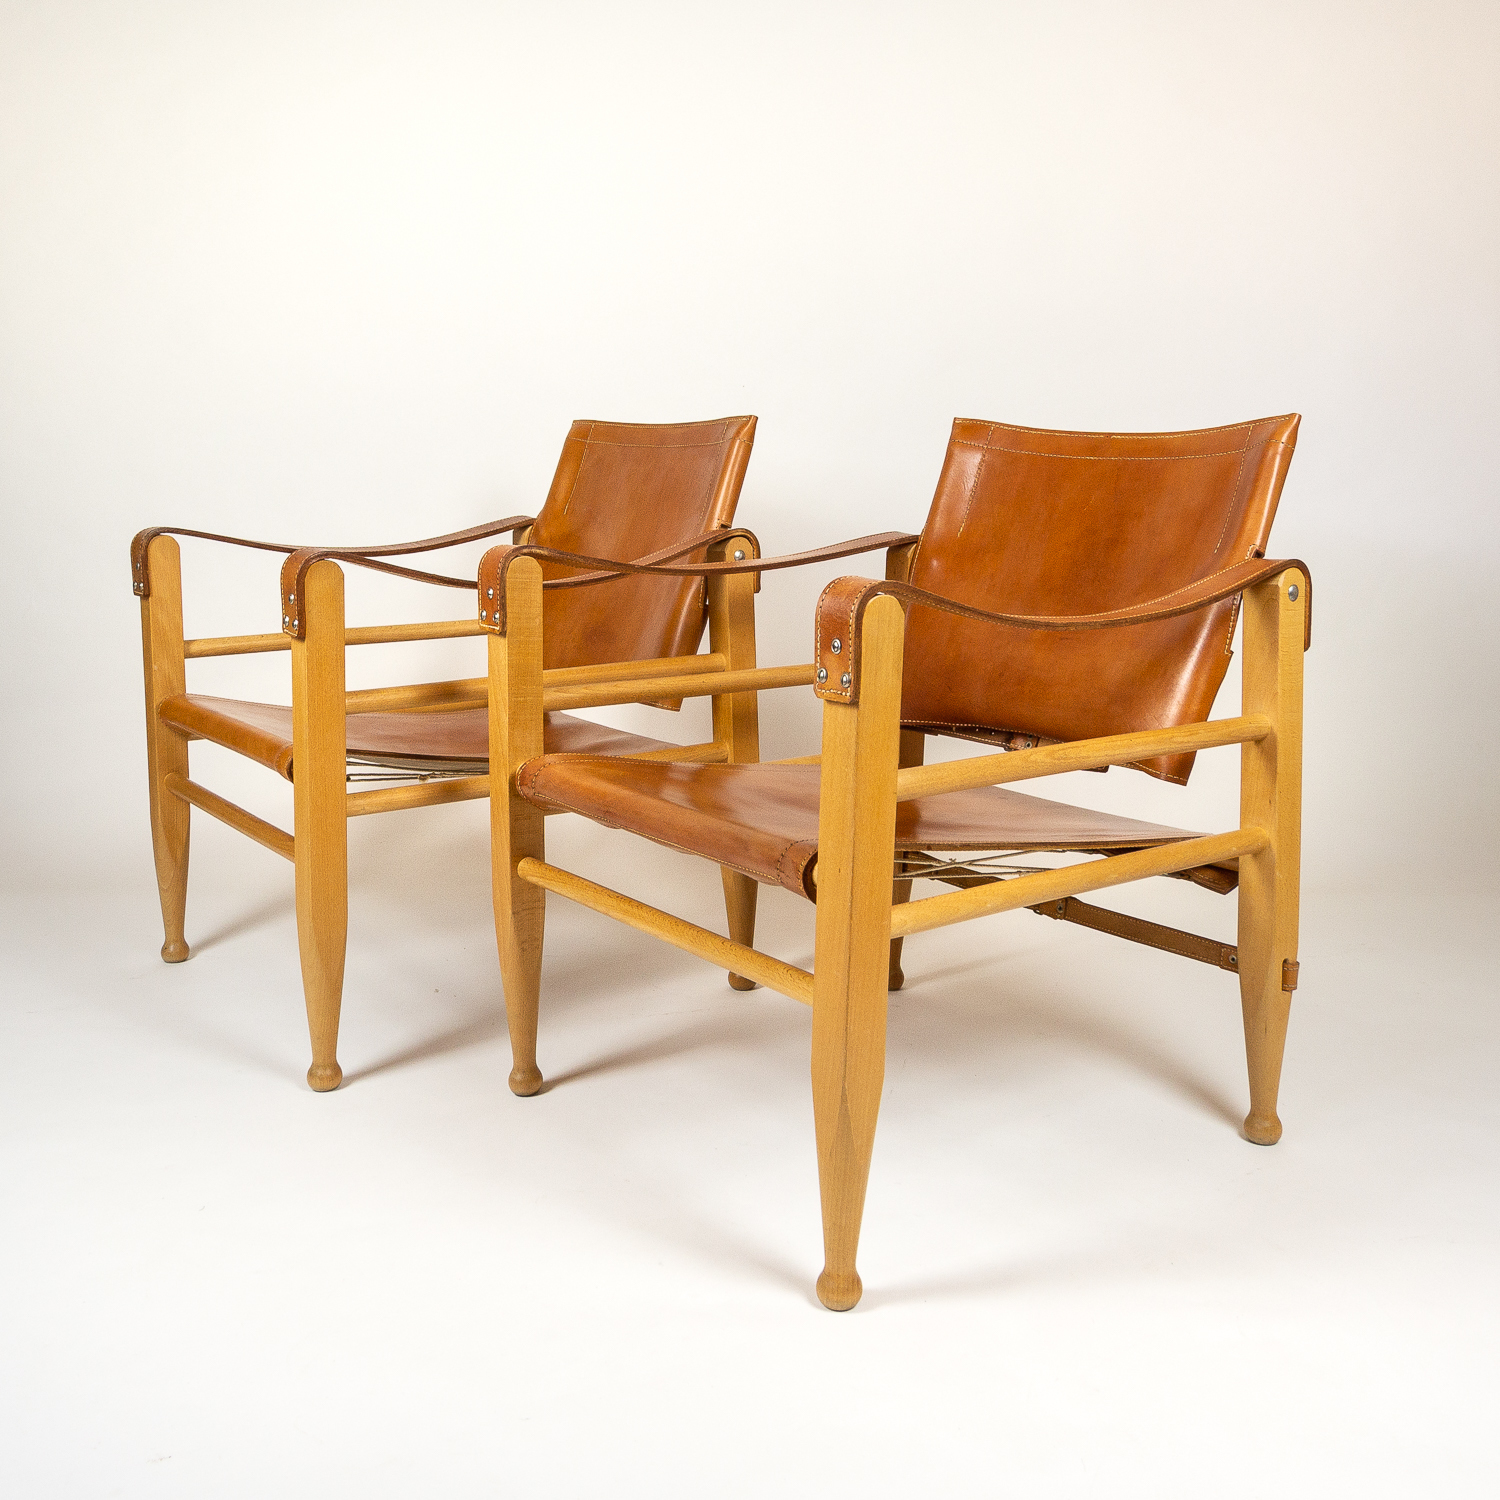 Safari Chairs A Pair Of Aage Bruun Safari Chairs